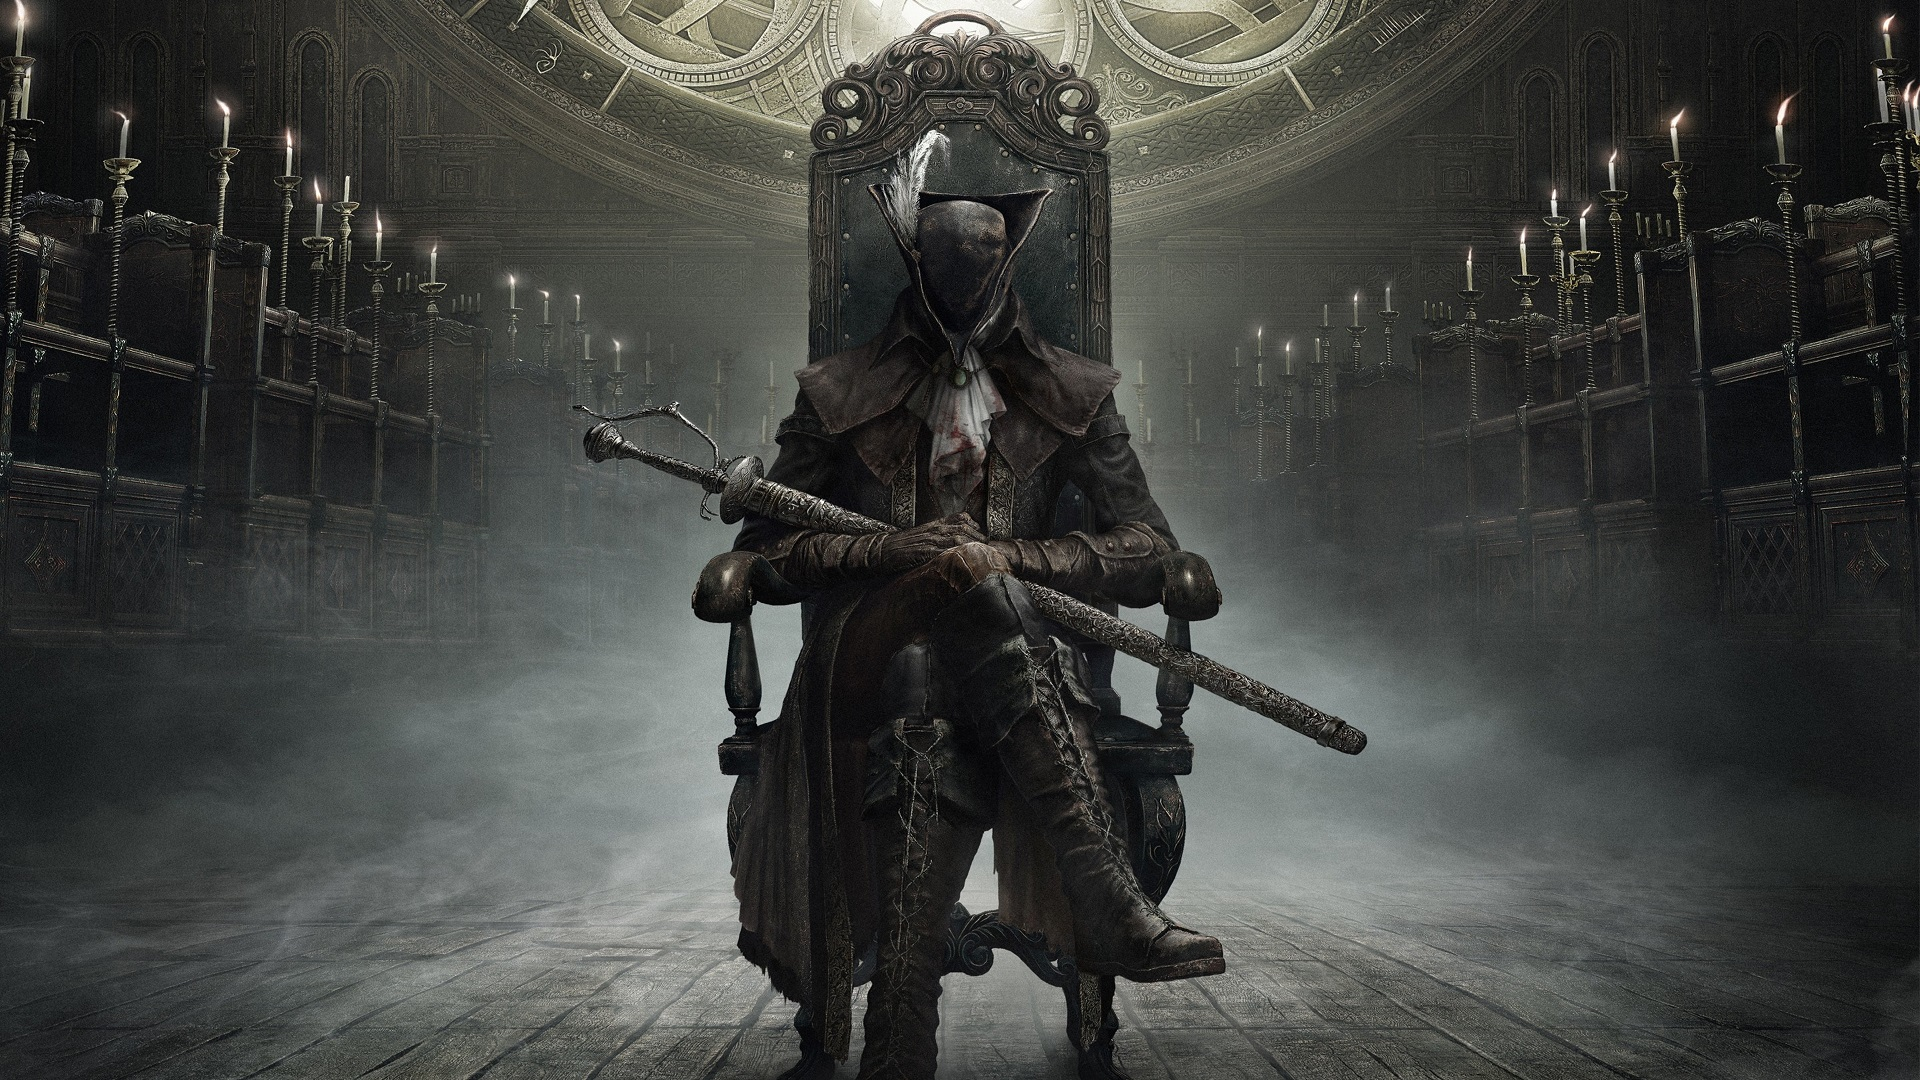 Fallout 4 Wallpaper Hd One Bloodborne Boss Was Originally Supposed To Have A Much